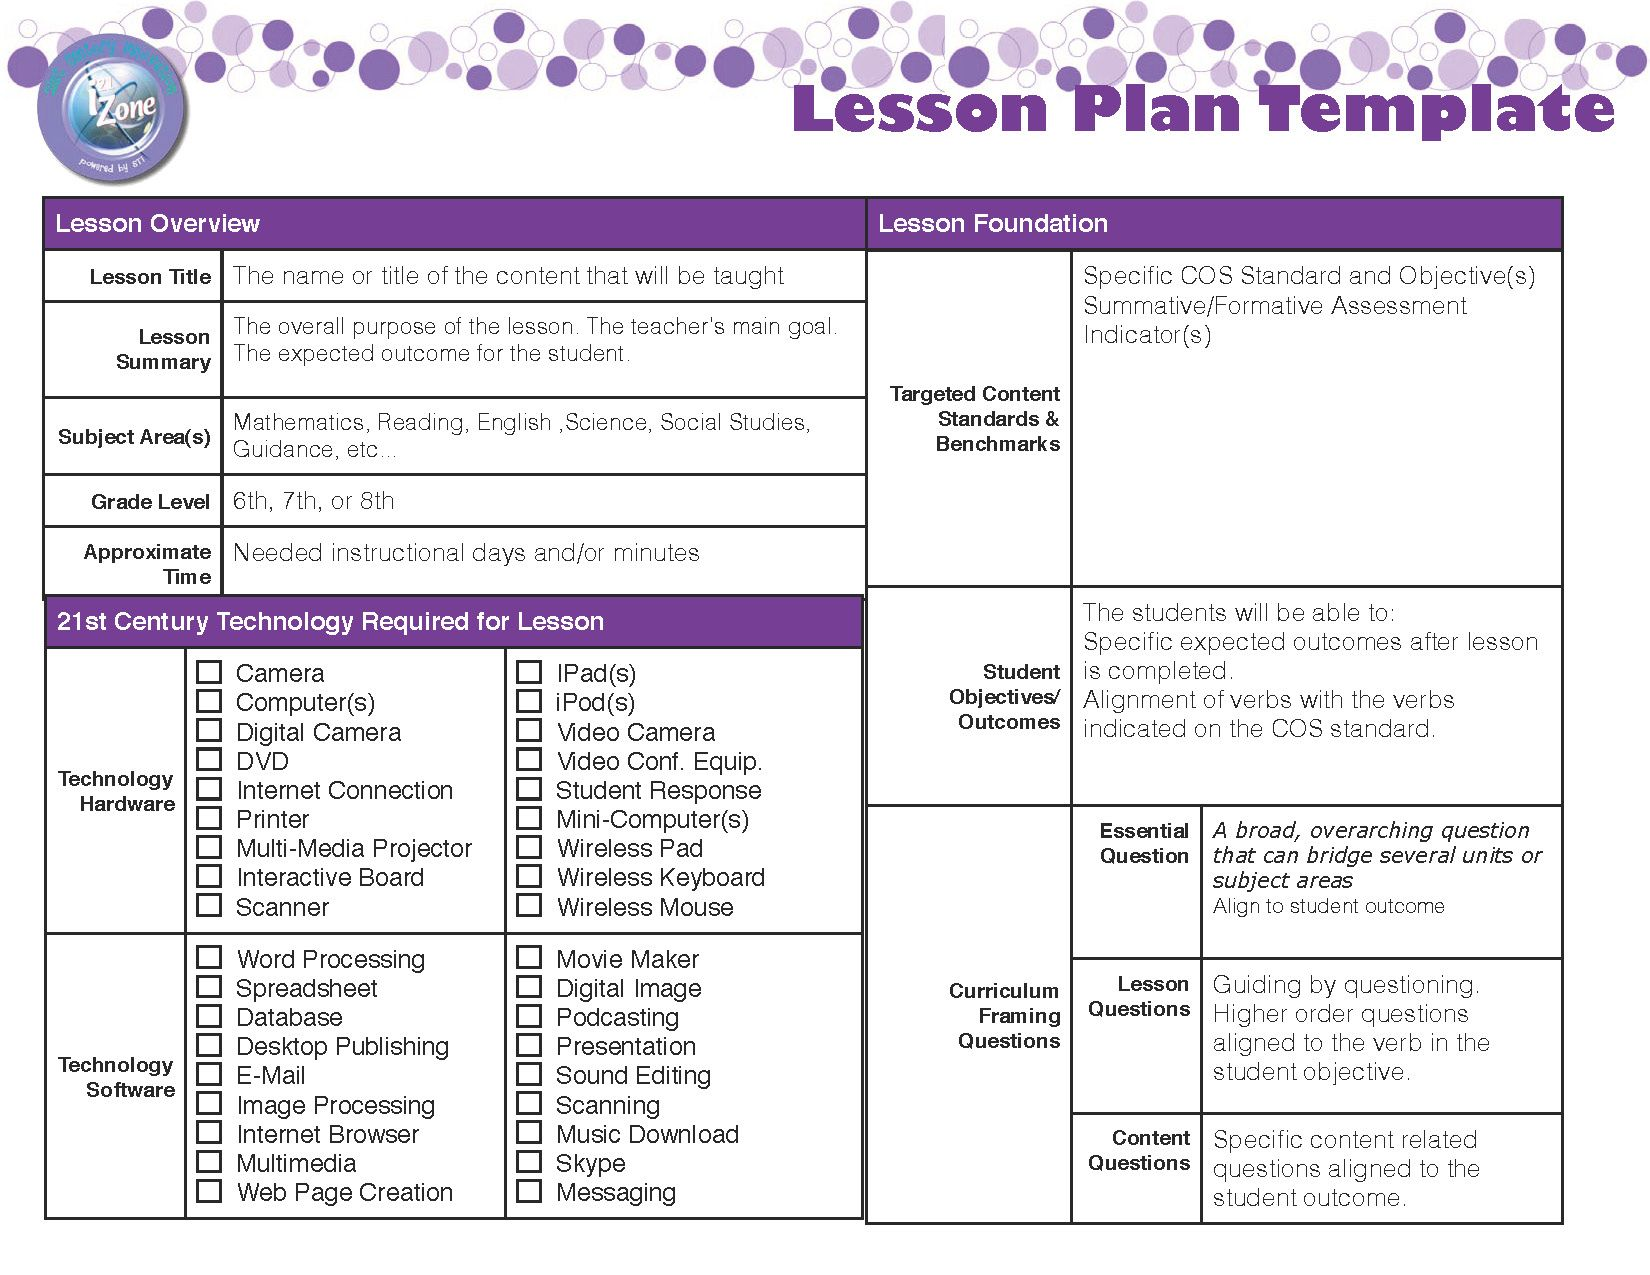 Lesson plan template writings on the whiteboard all for Lesson plan template for esl teachers